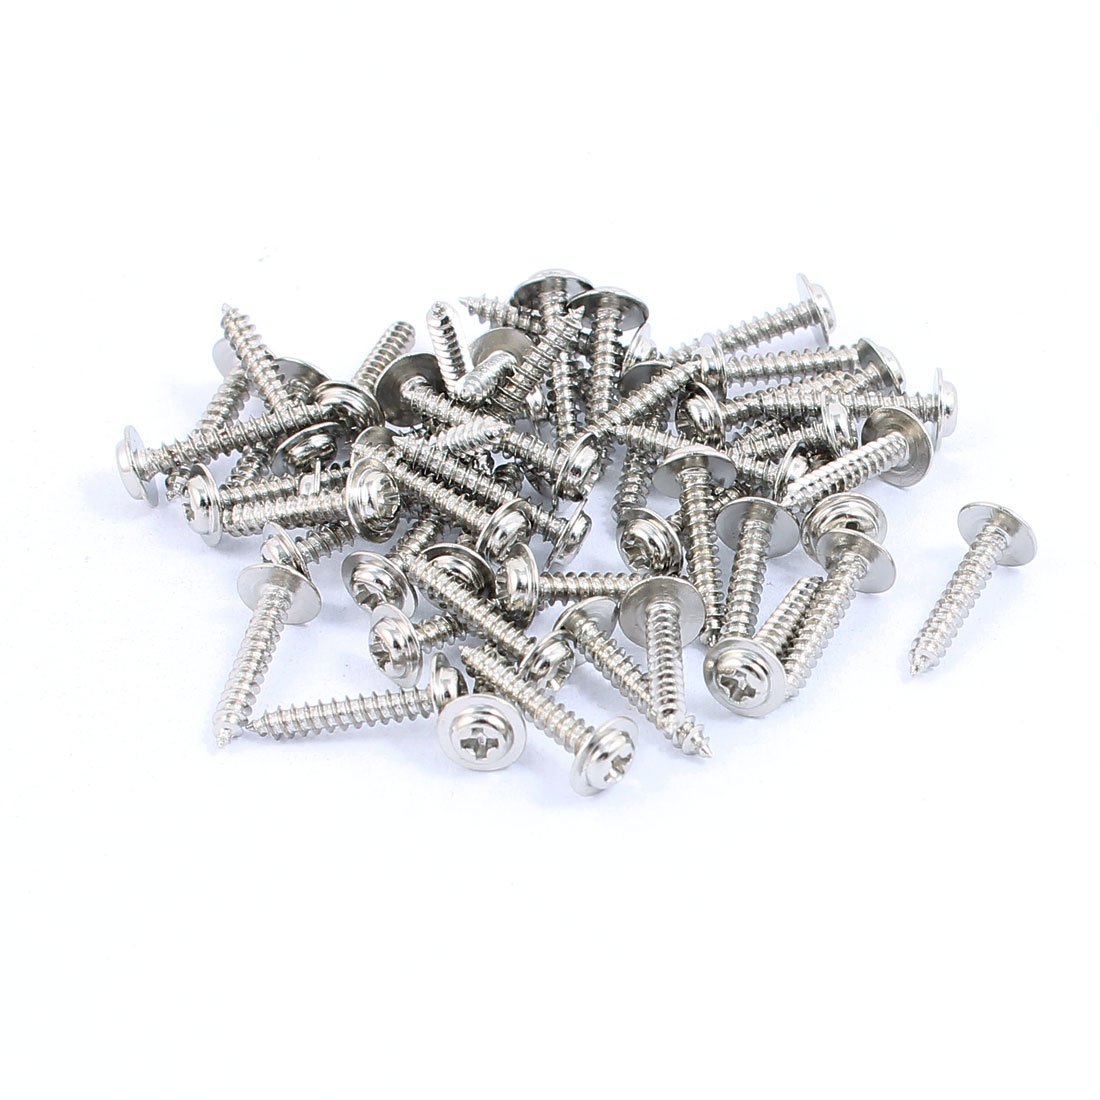 50pcs 2x12mm Stainless Steel Self Tapping Screw Round Phillips Head With Washer